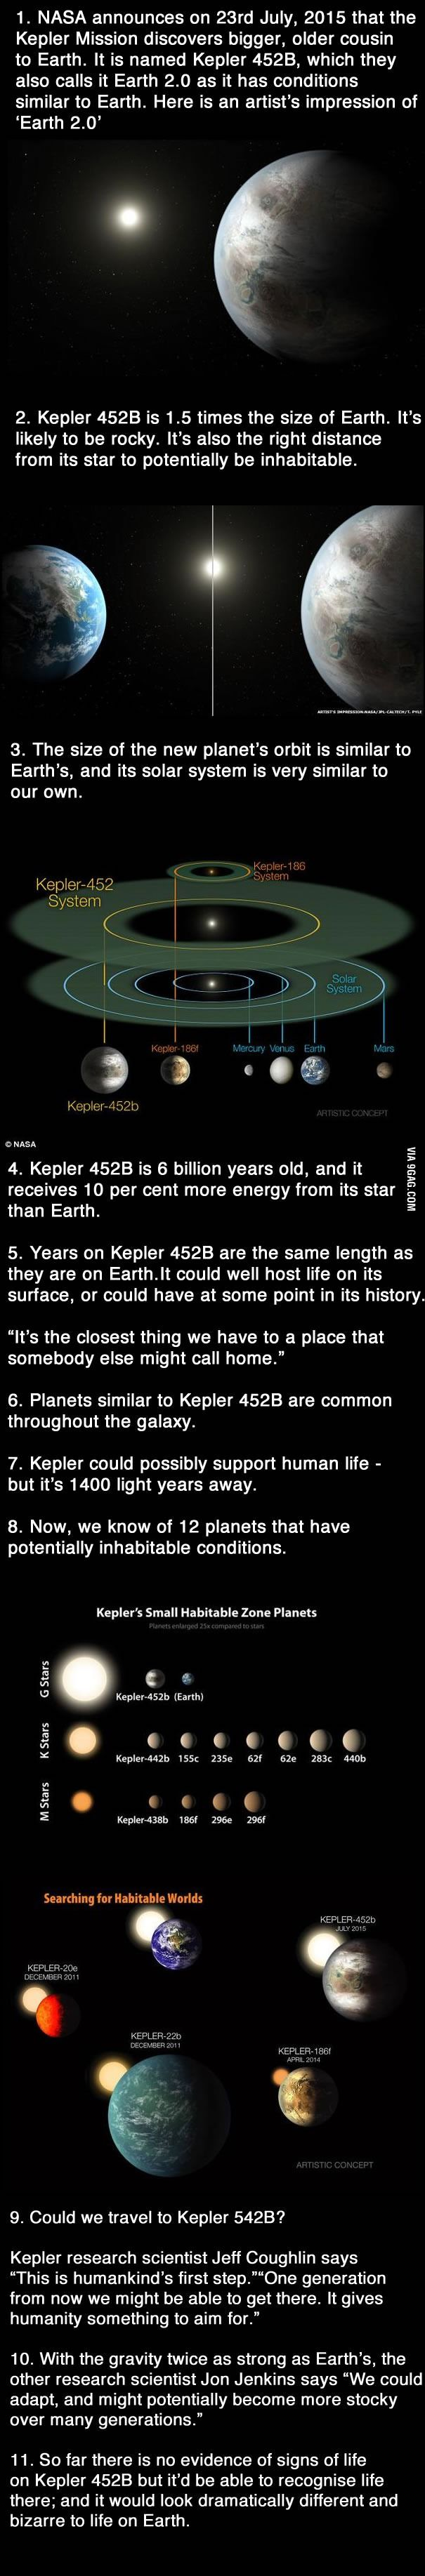 """NASA Announces """"Earth 2.0"""" And Here's Everything You Should Know About This Earth-Like Planet Called """"Kepler 452B"""""""